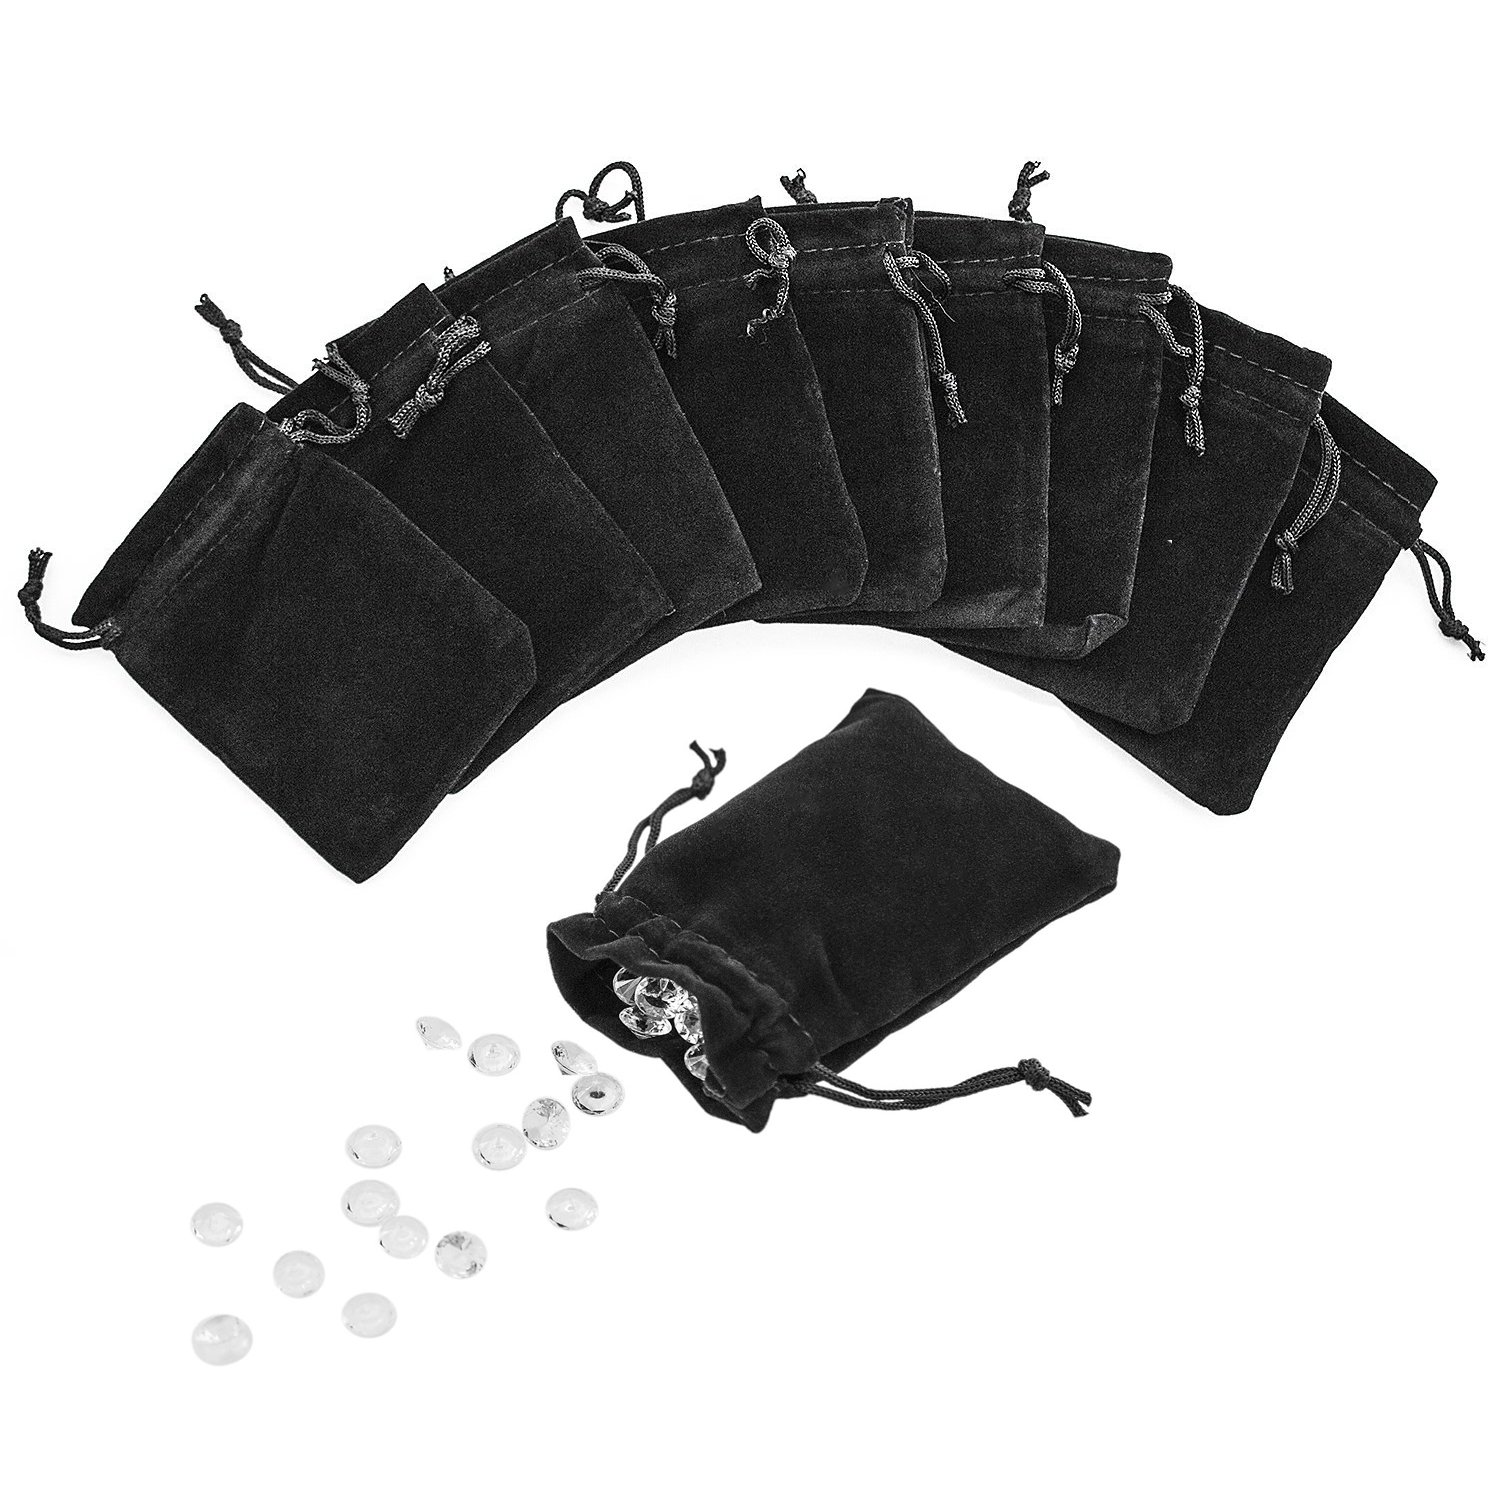 3'' x 4'' Black Velveteen Sack Pouch Bags for Jewelry, Gifts, Event Supplies (50 Pouches)